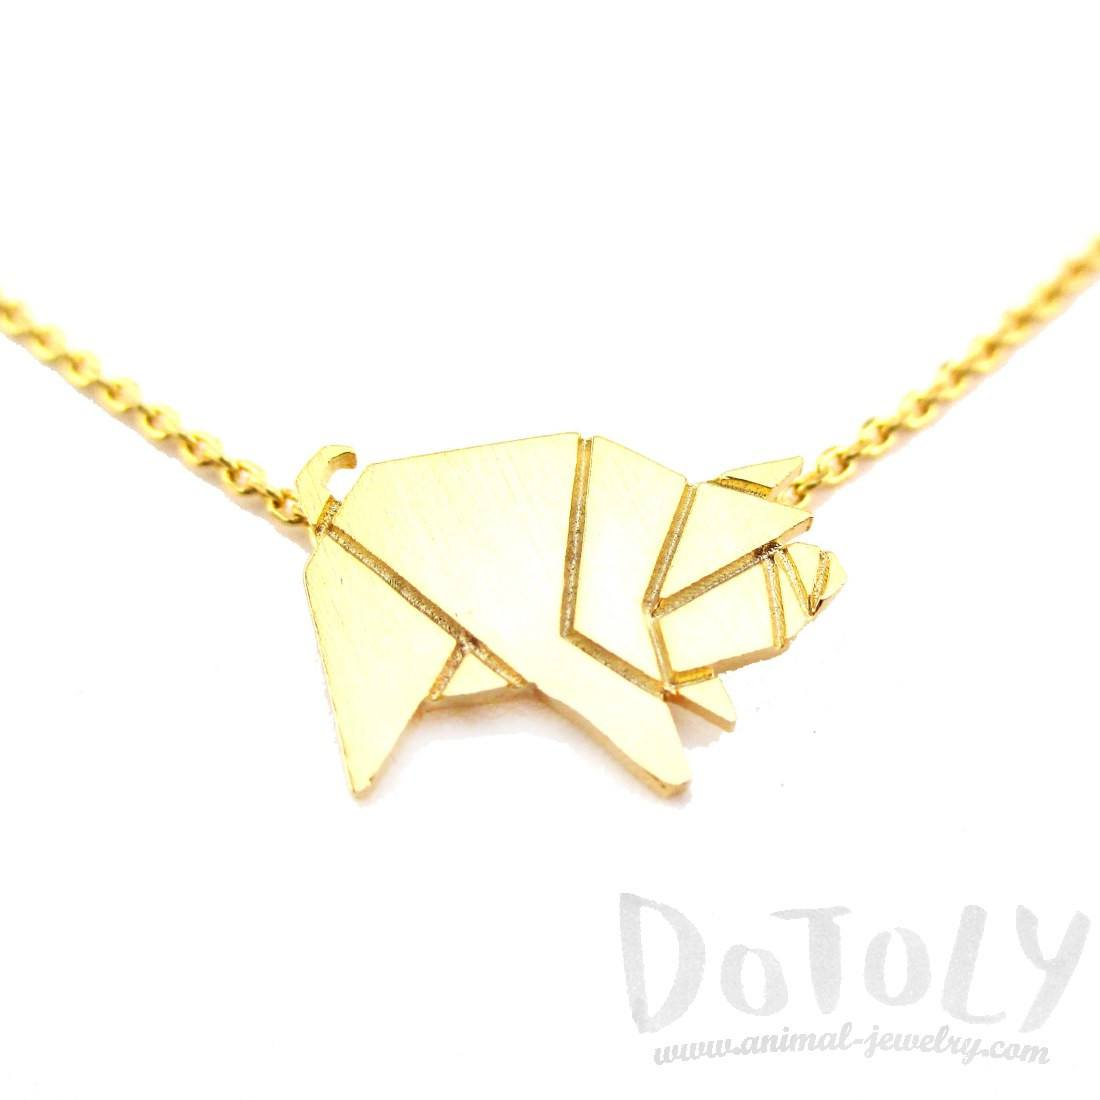 Wild Boar Pig Shaped Origami Pendant Necklace in Gold | Animal Jewelry